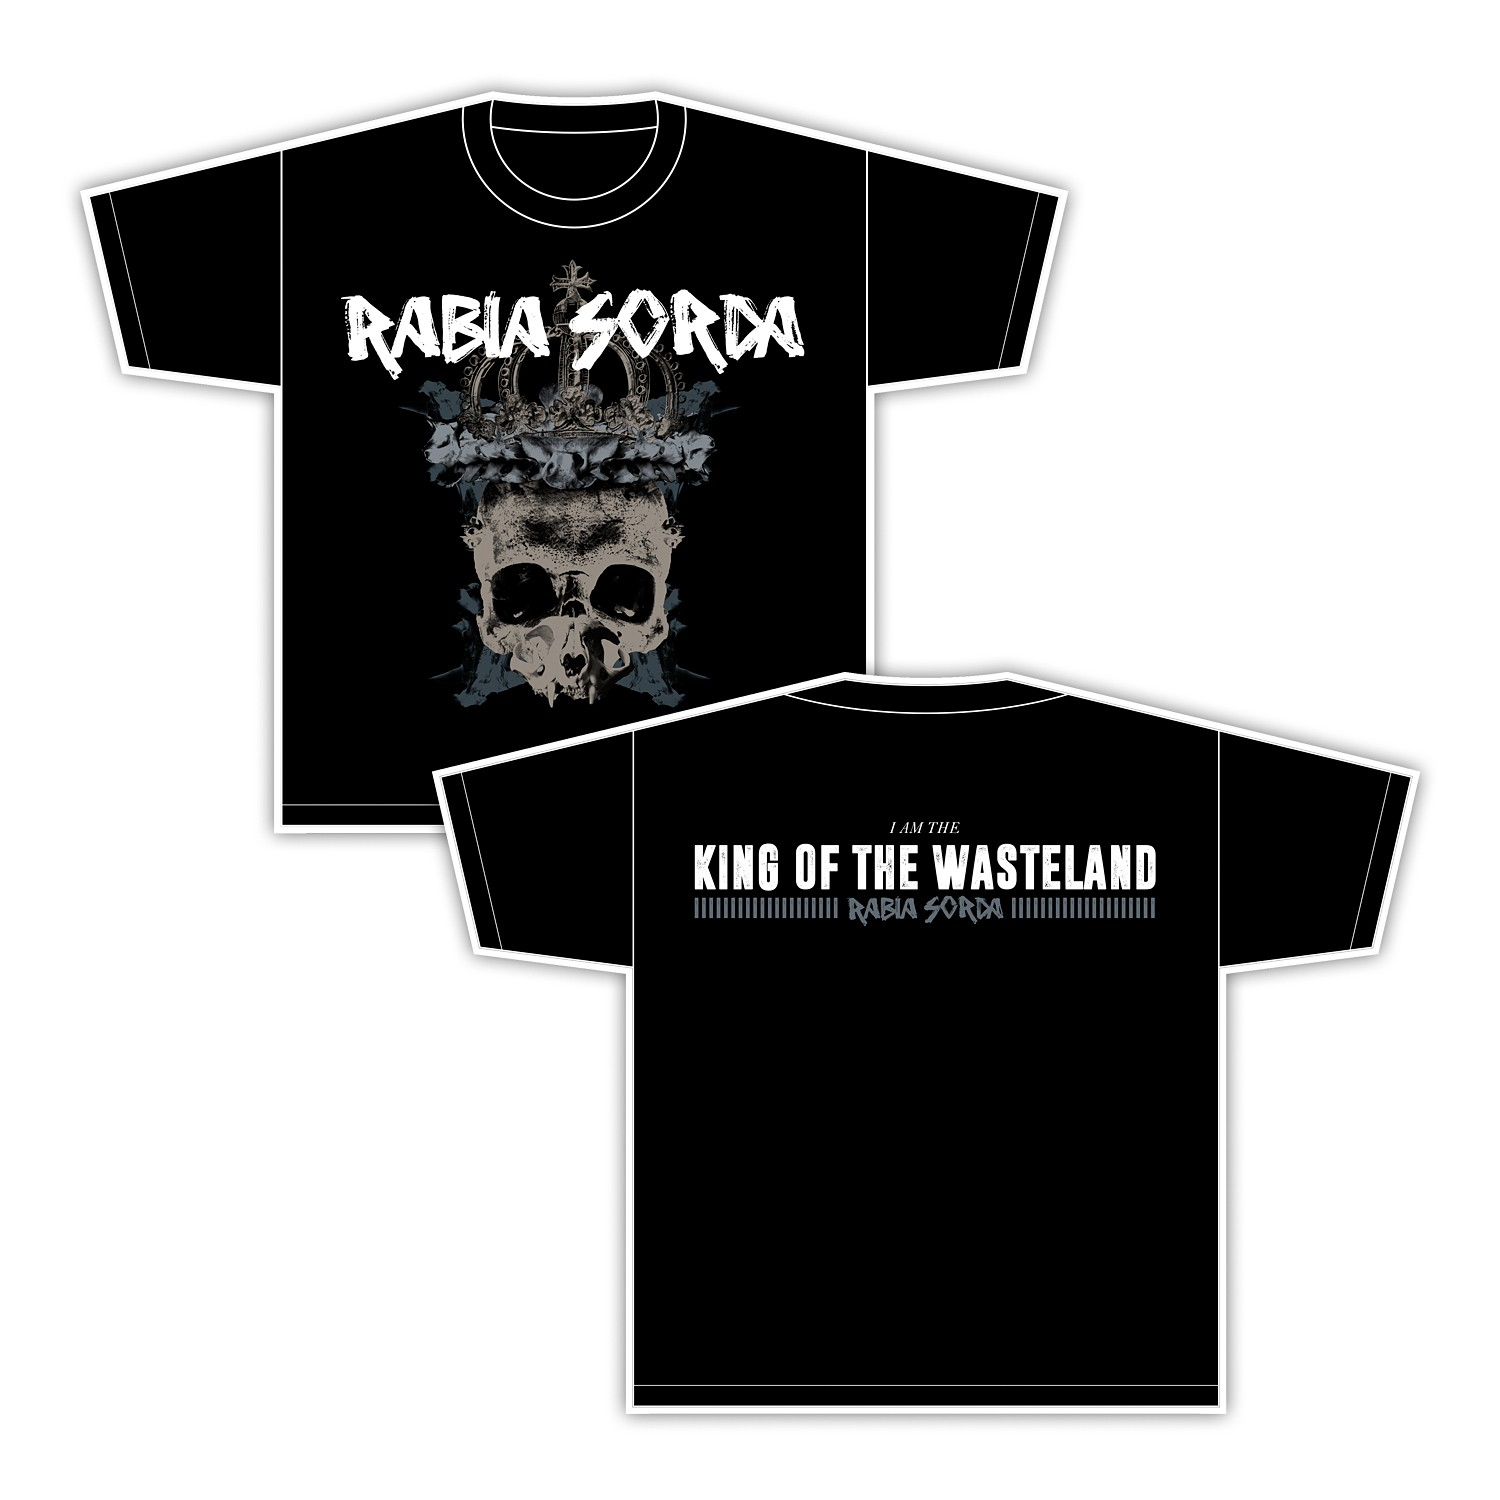 Rabia Sorda - King Of The Wasteland - T-Shirt